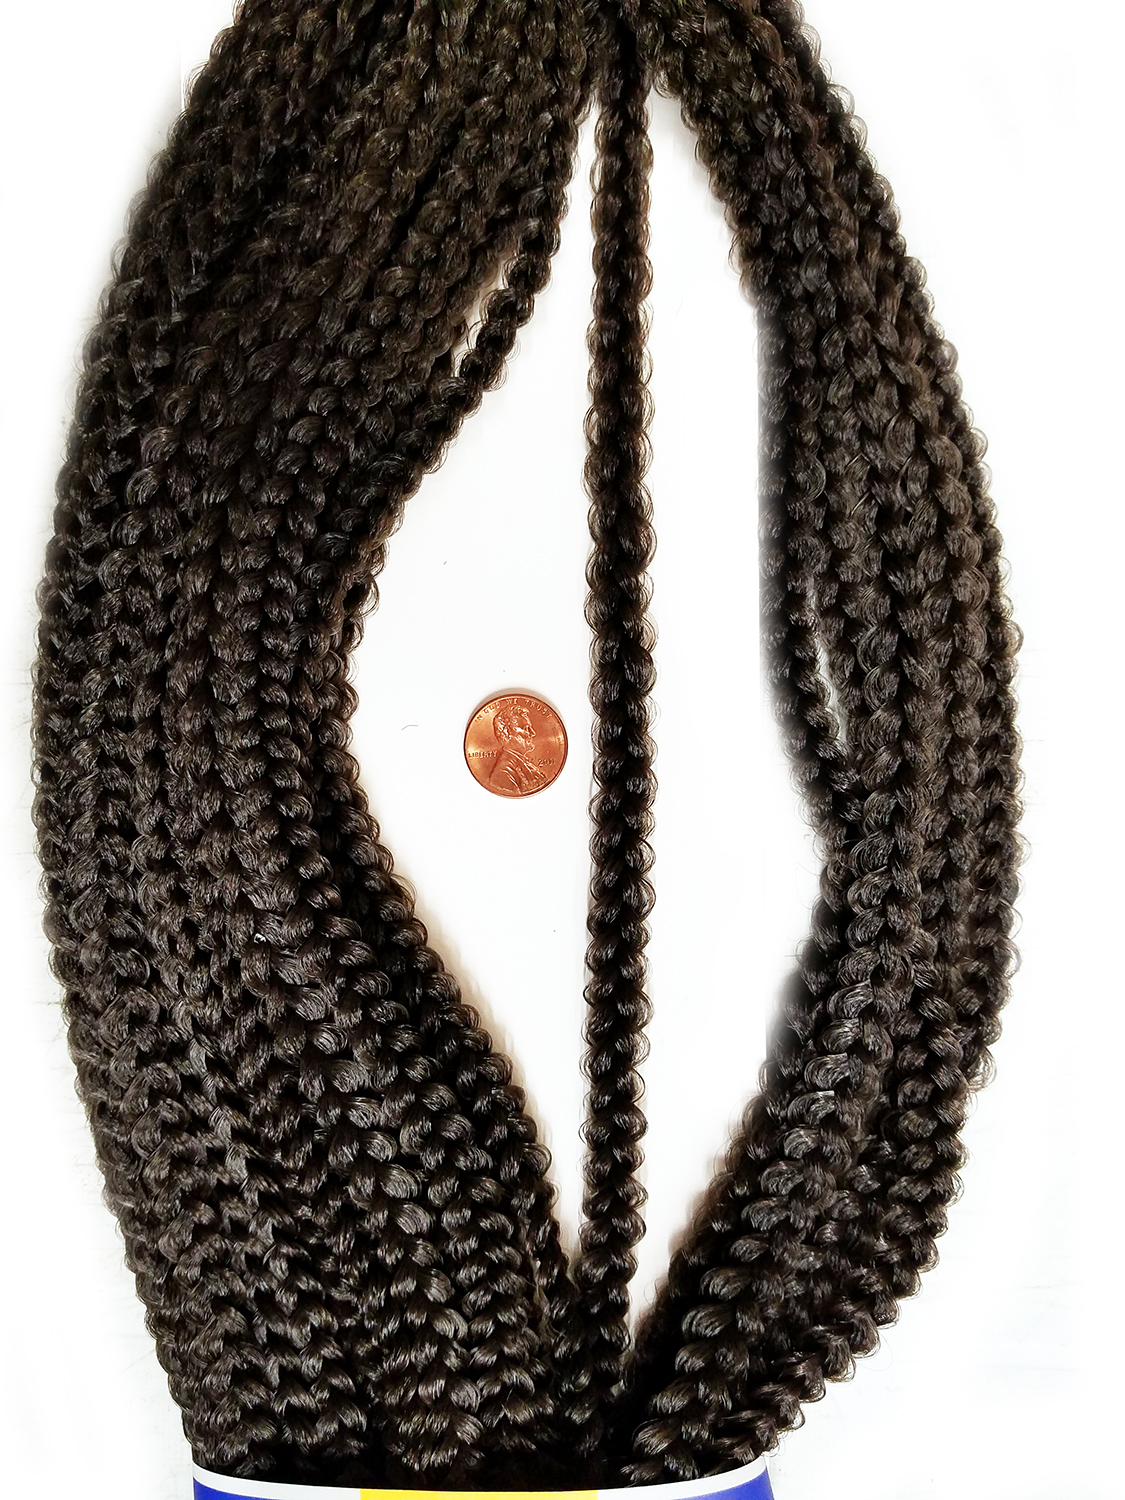 Crochet Braids Ebay : ... BOX BRAIDS - FREETRESS SYNTHETIC CROCHET BRAID HAIR PRE-LOOPED eBay